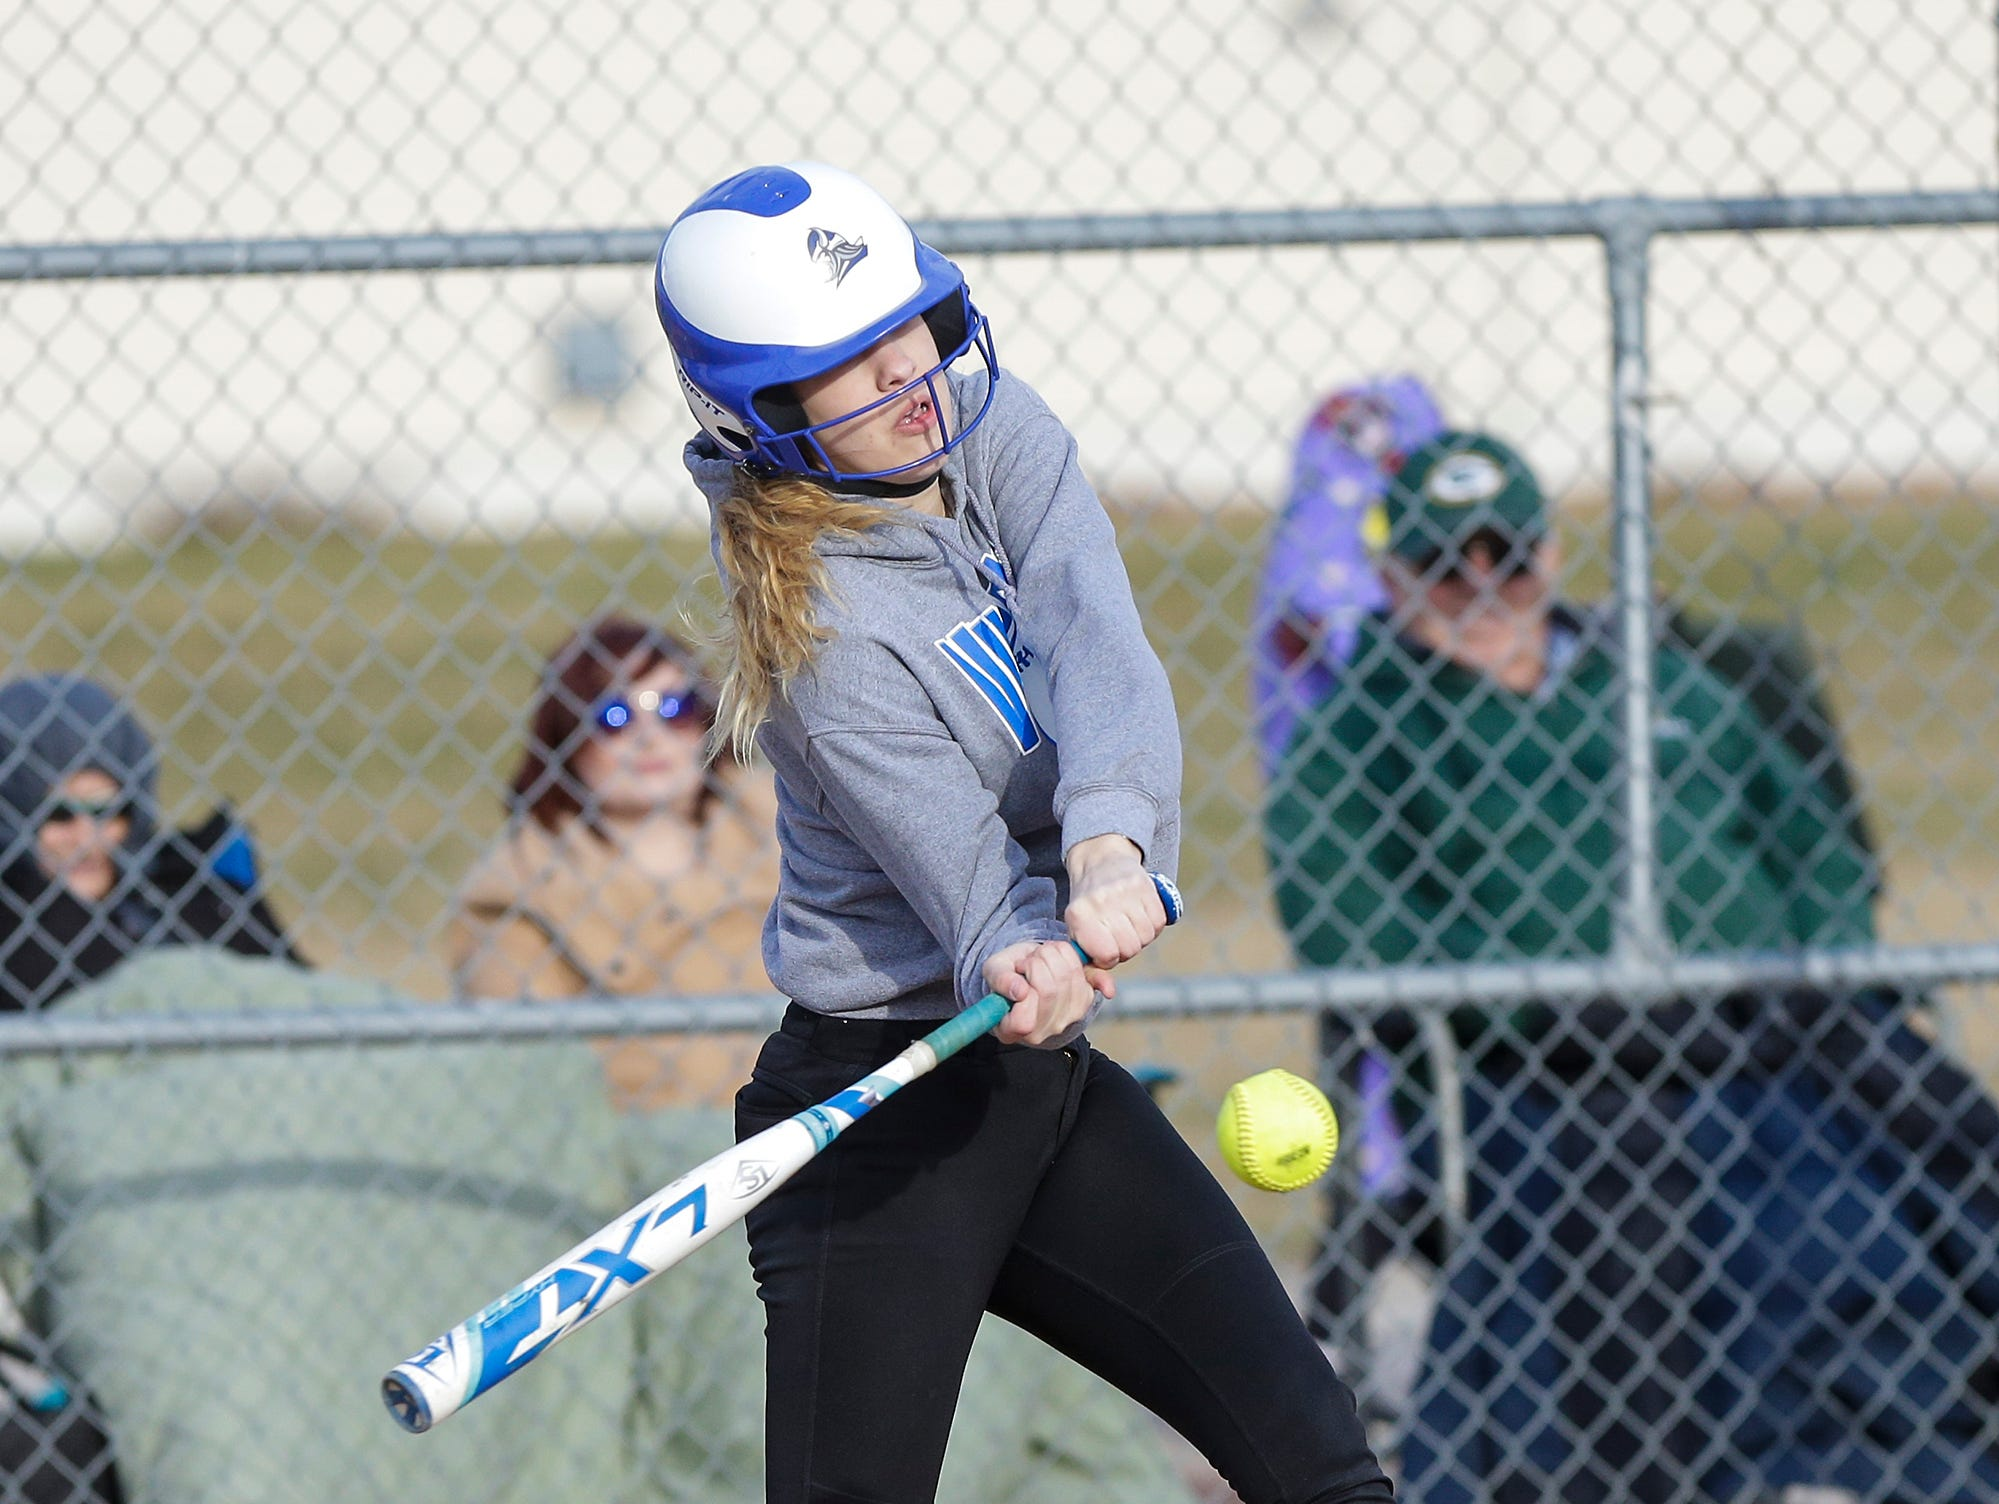 Winnebago Lutheran Academy softball's Kaylee Frey hits a three run homerun against Laconia High School April 9, 2019 in the third inning during their game in Fond du Lac, Wis. Laconia won the game 25-9. Doug Raflik/USA TODAY NETWORK-Wisconsin